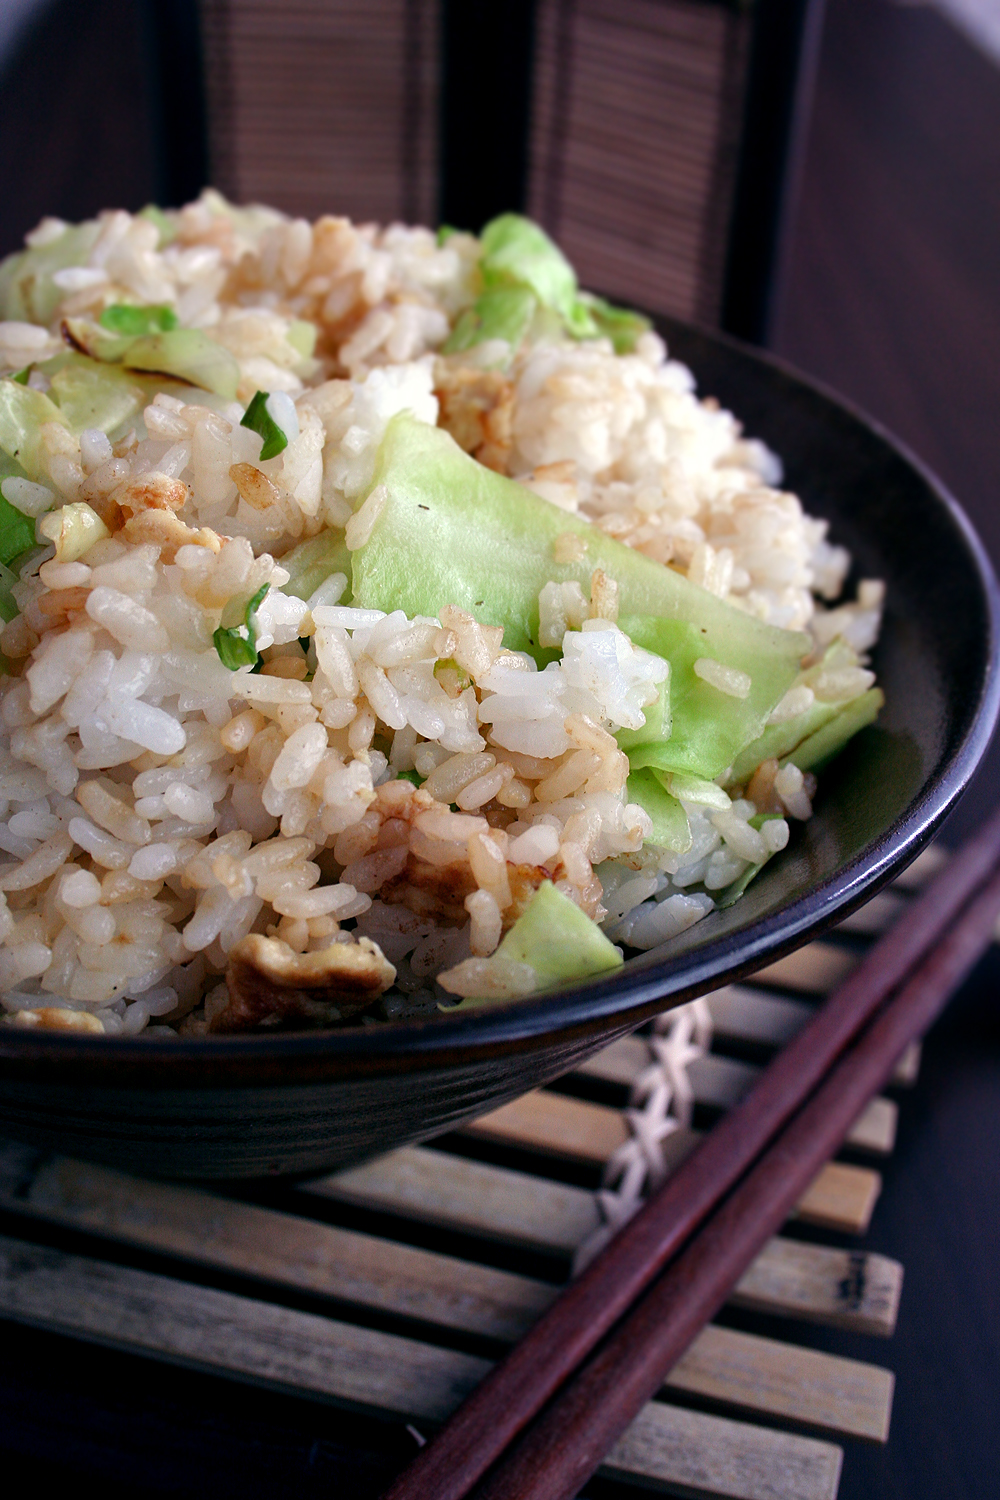 rice chinese fried staple foods china cuisine wikipedia dish type fan japanese noodles cooking traditional popular western cookbook chao main